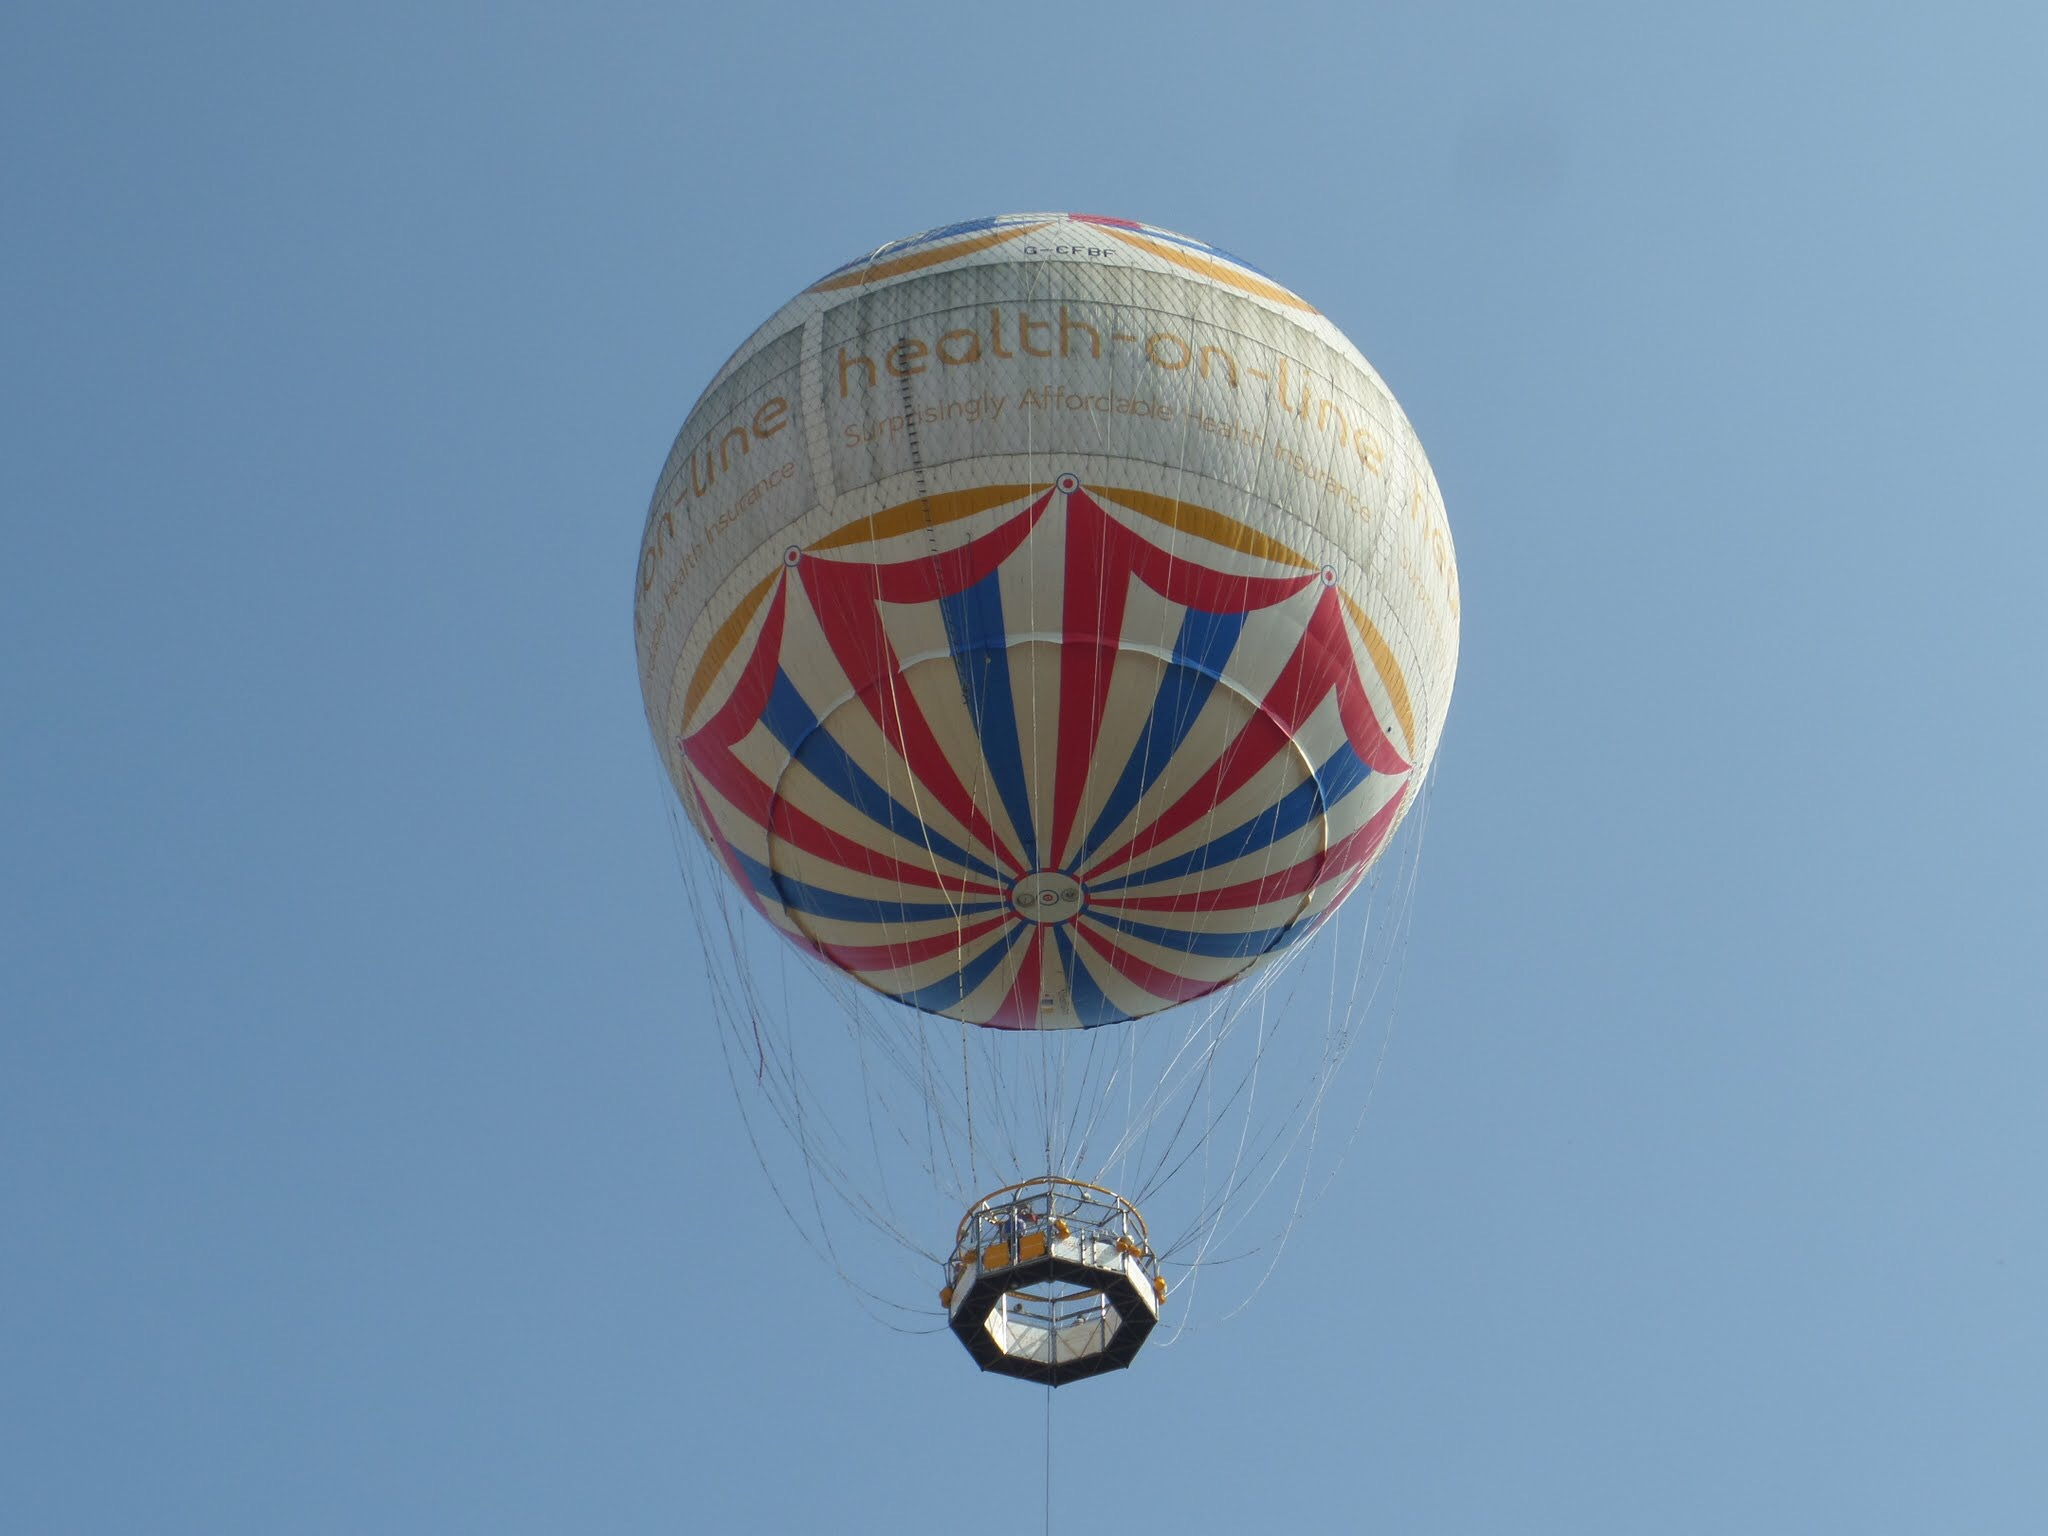 The Bournemouth Balloon